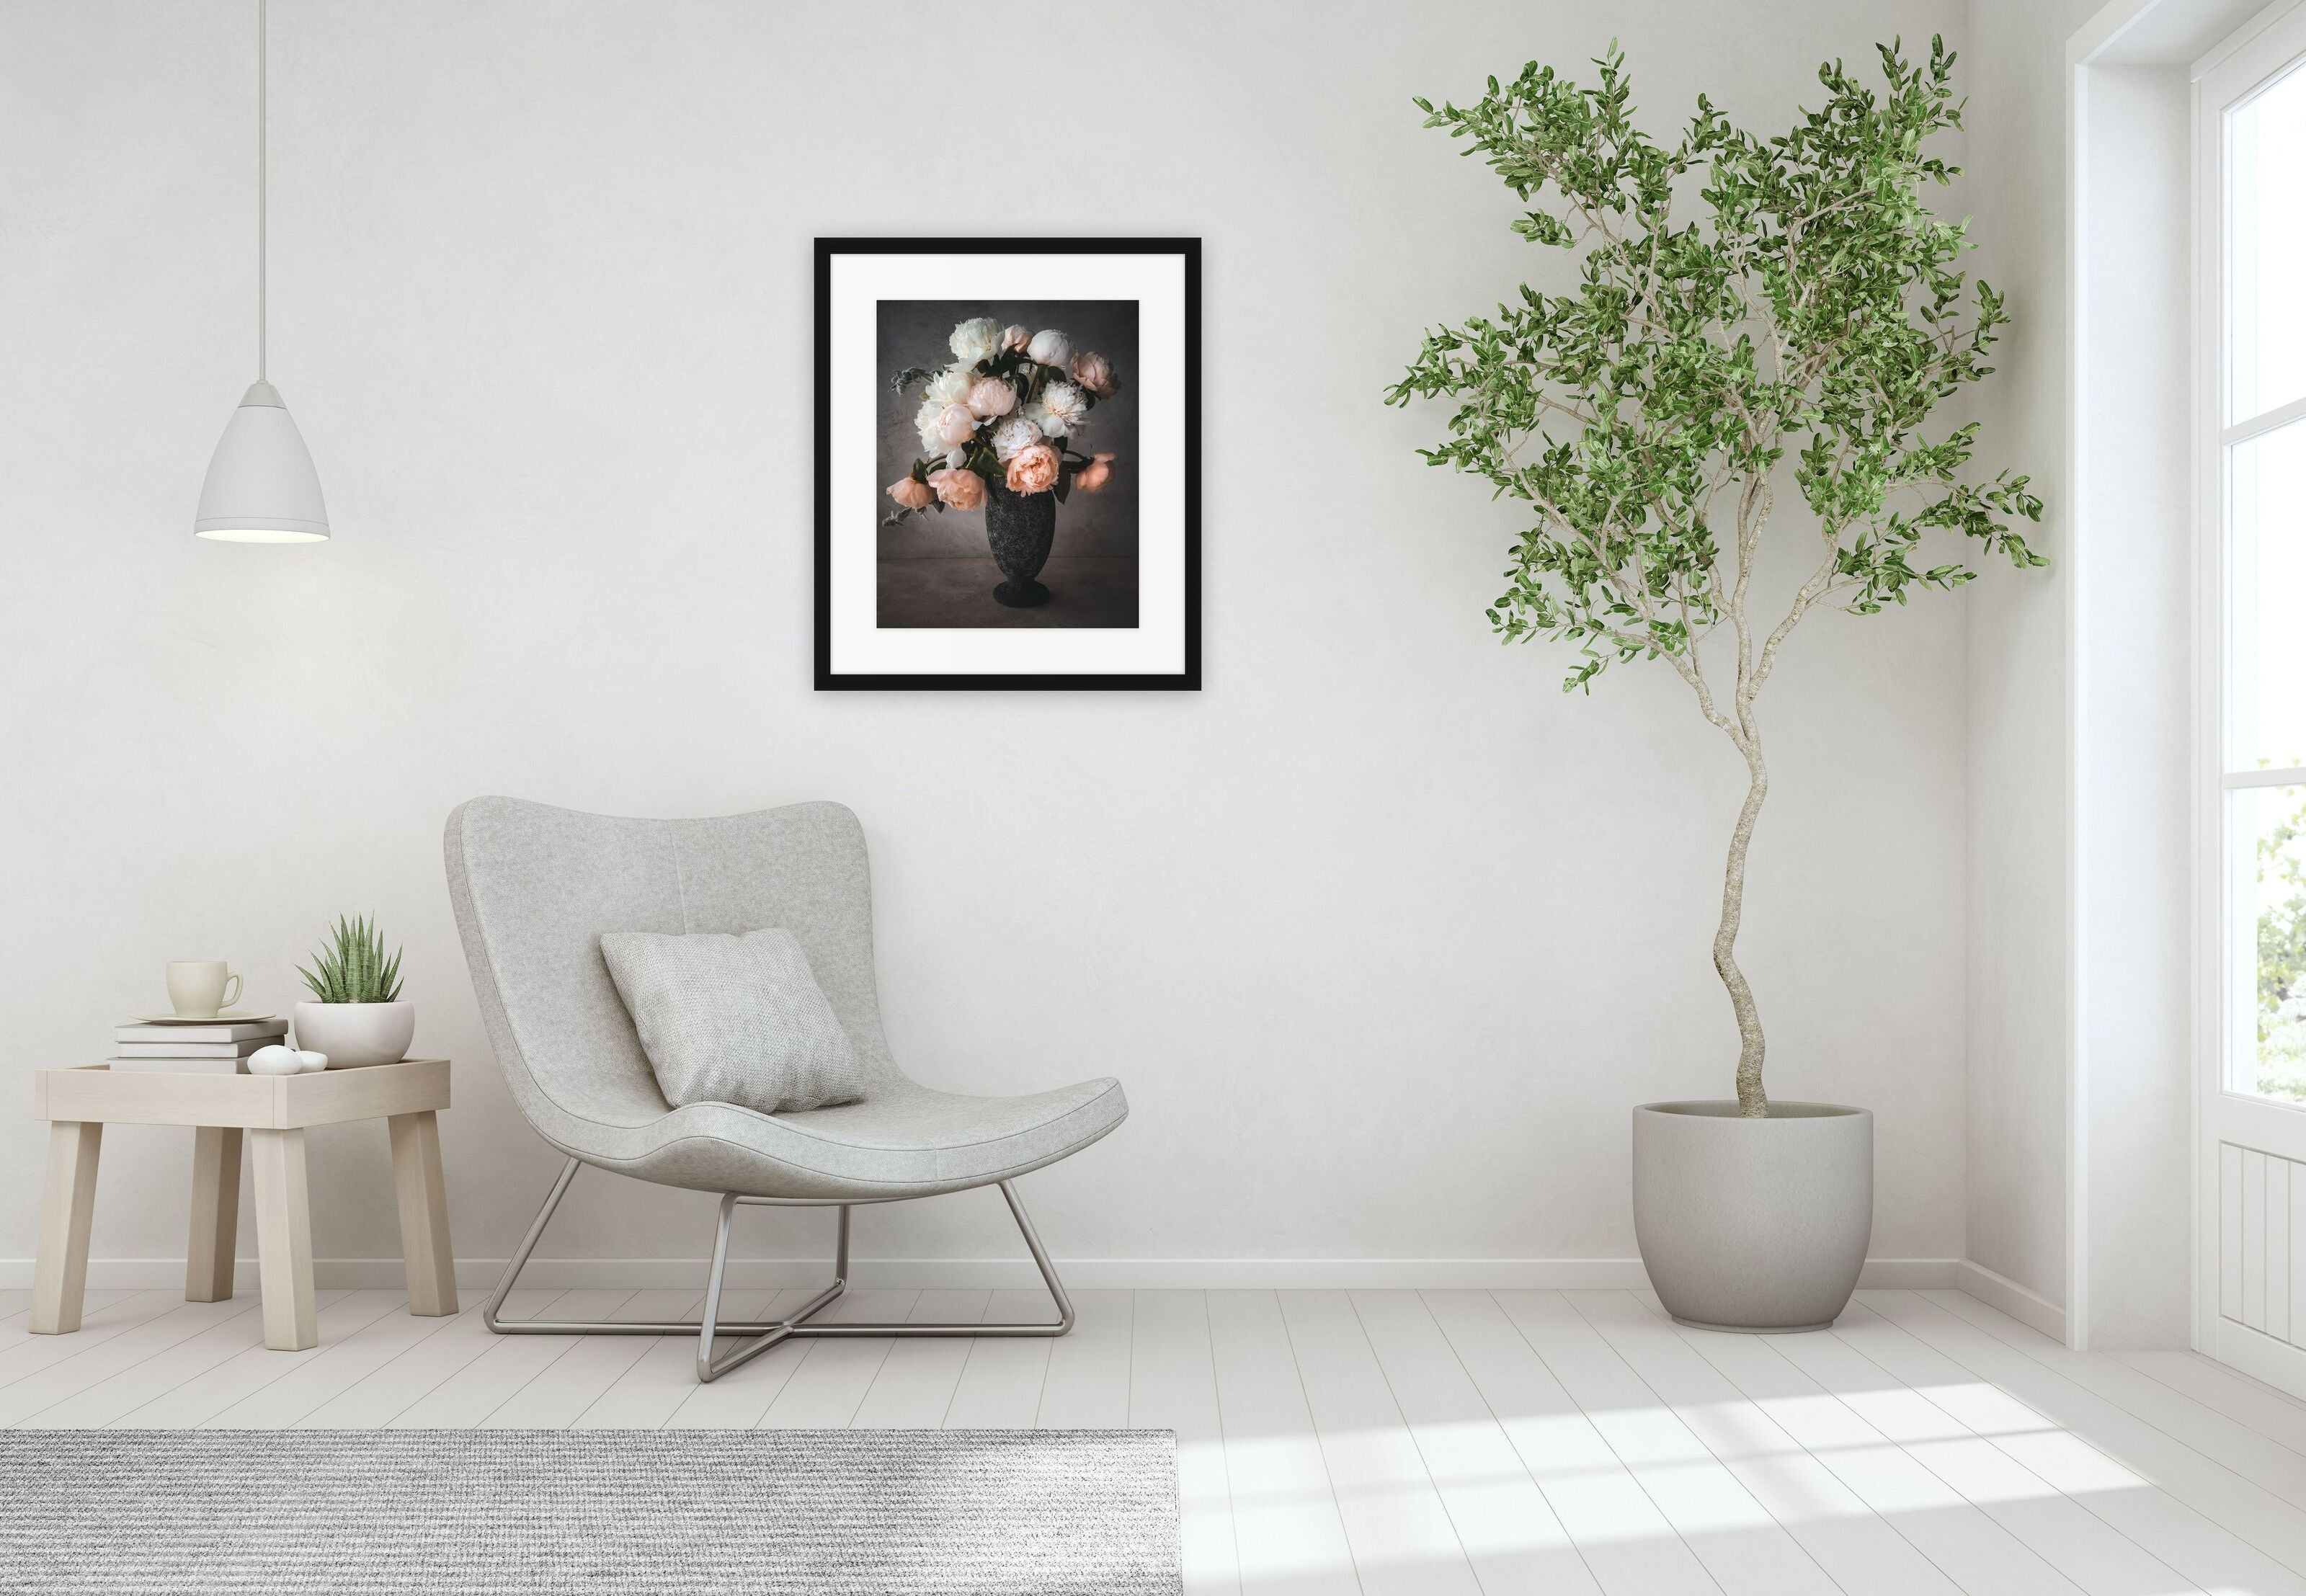 Decorating your space for ambient and emotional enhancement